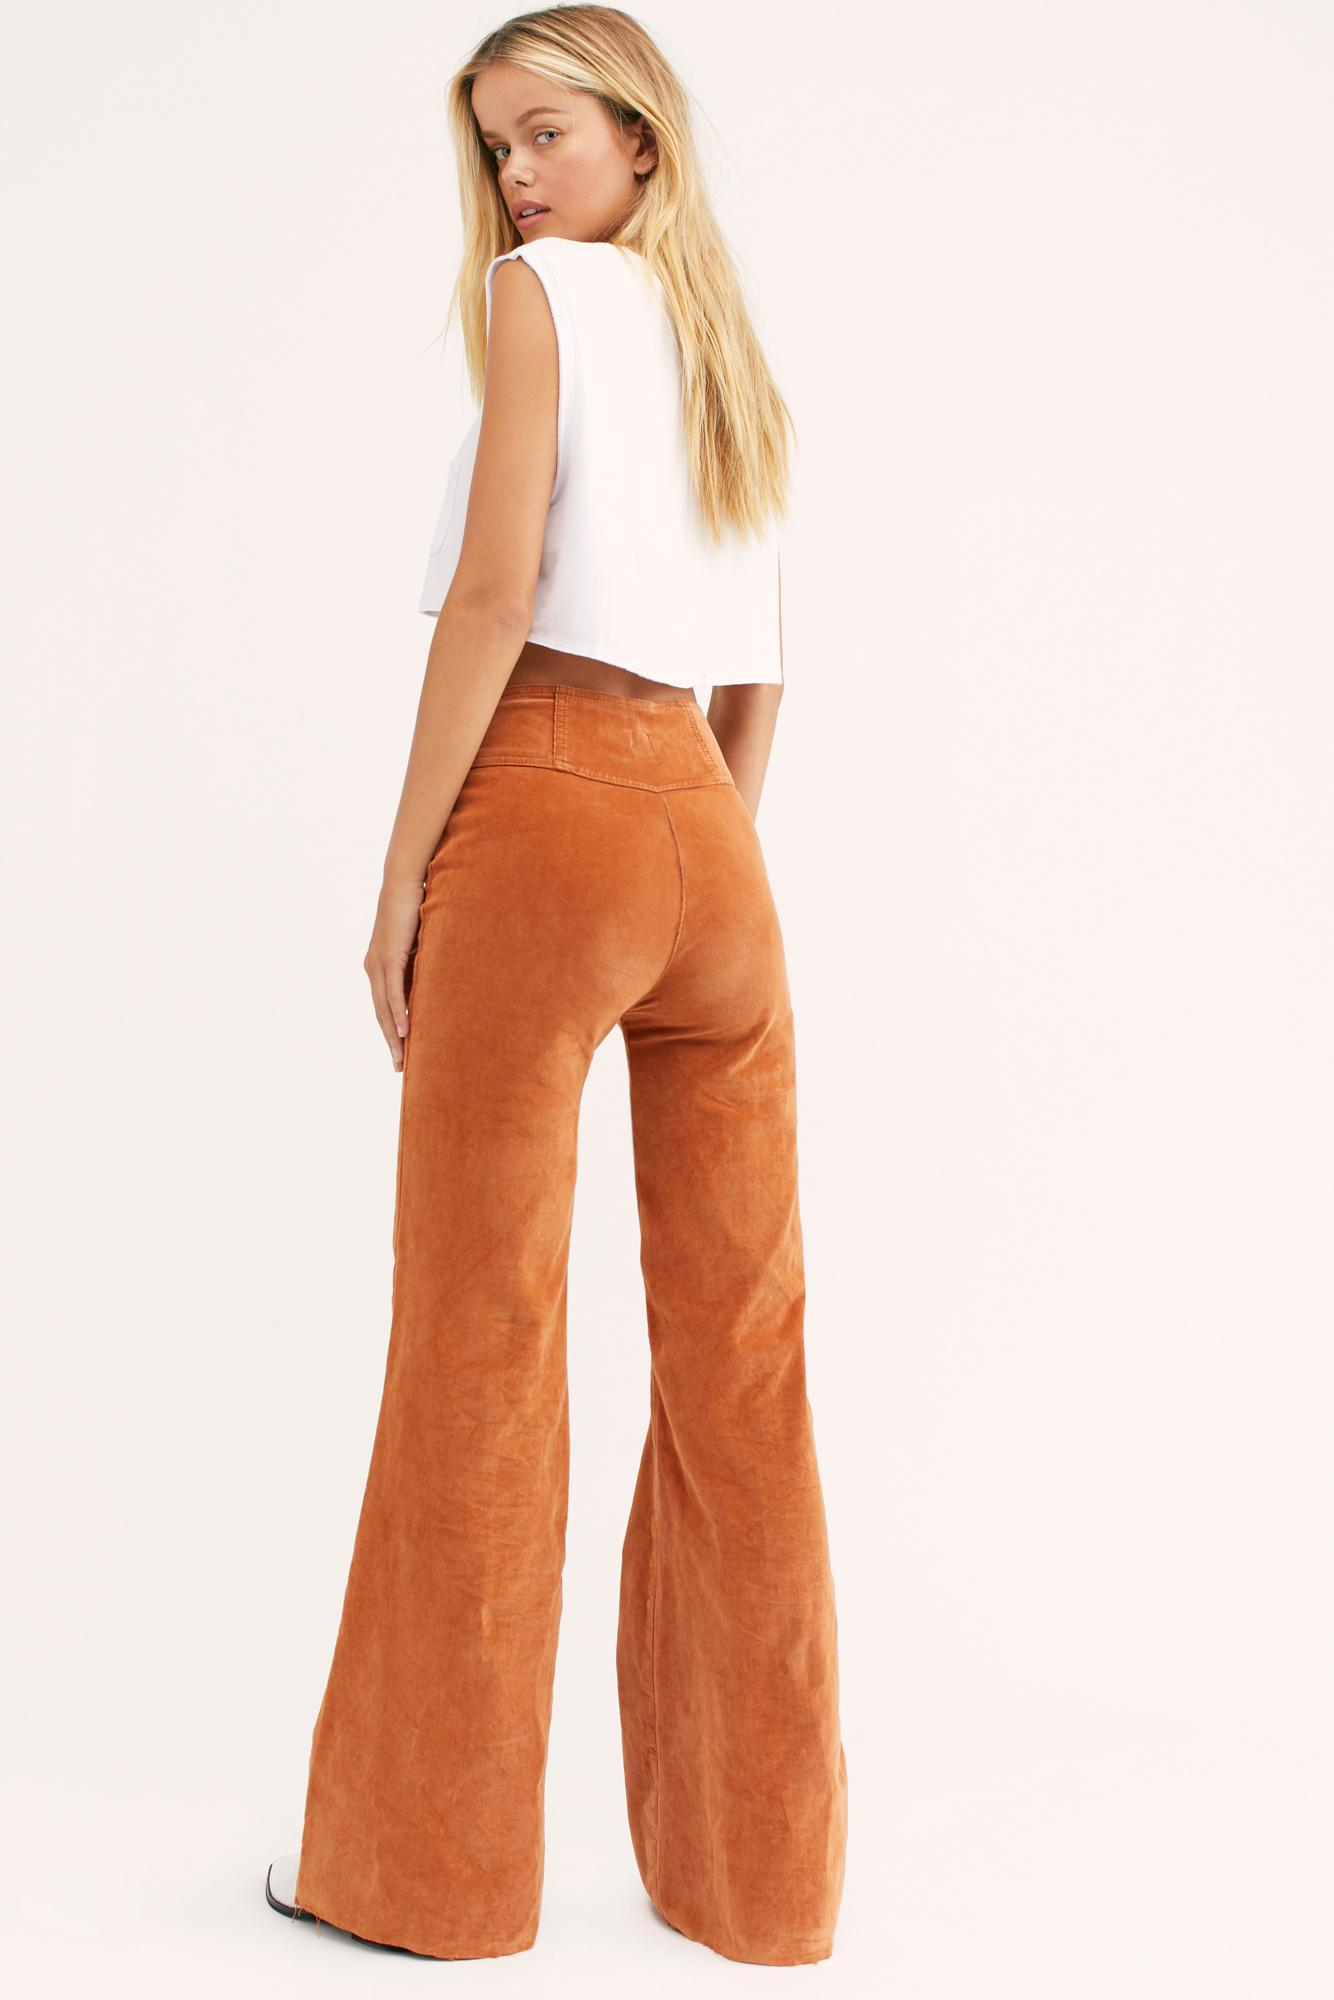 NEW Free People Wild Honey Cord Flare Leg Pants in Myrrh CRVY Jeans